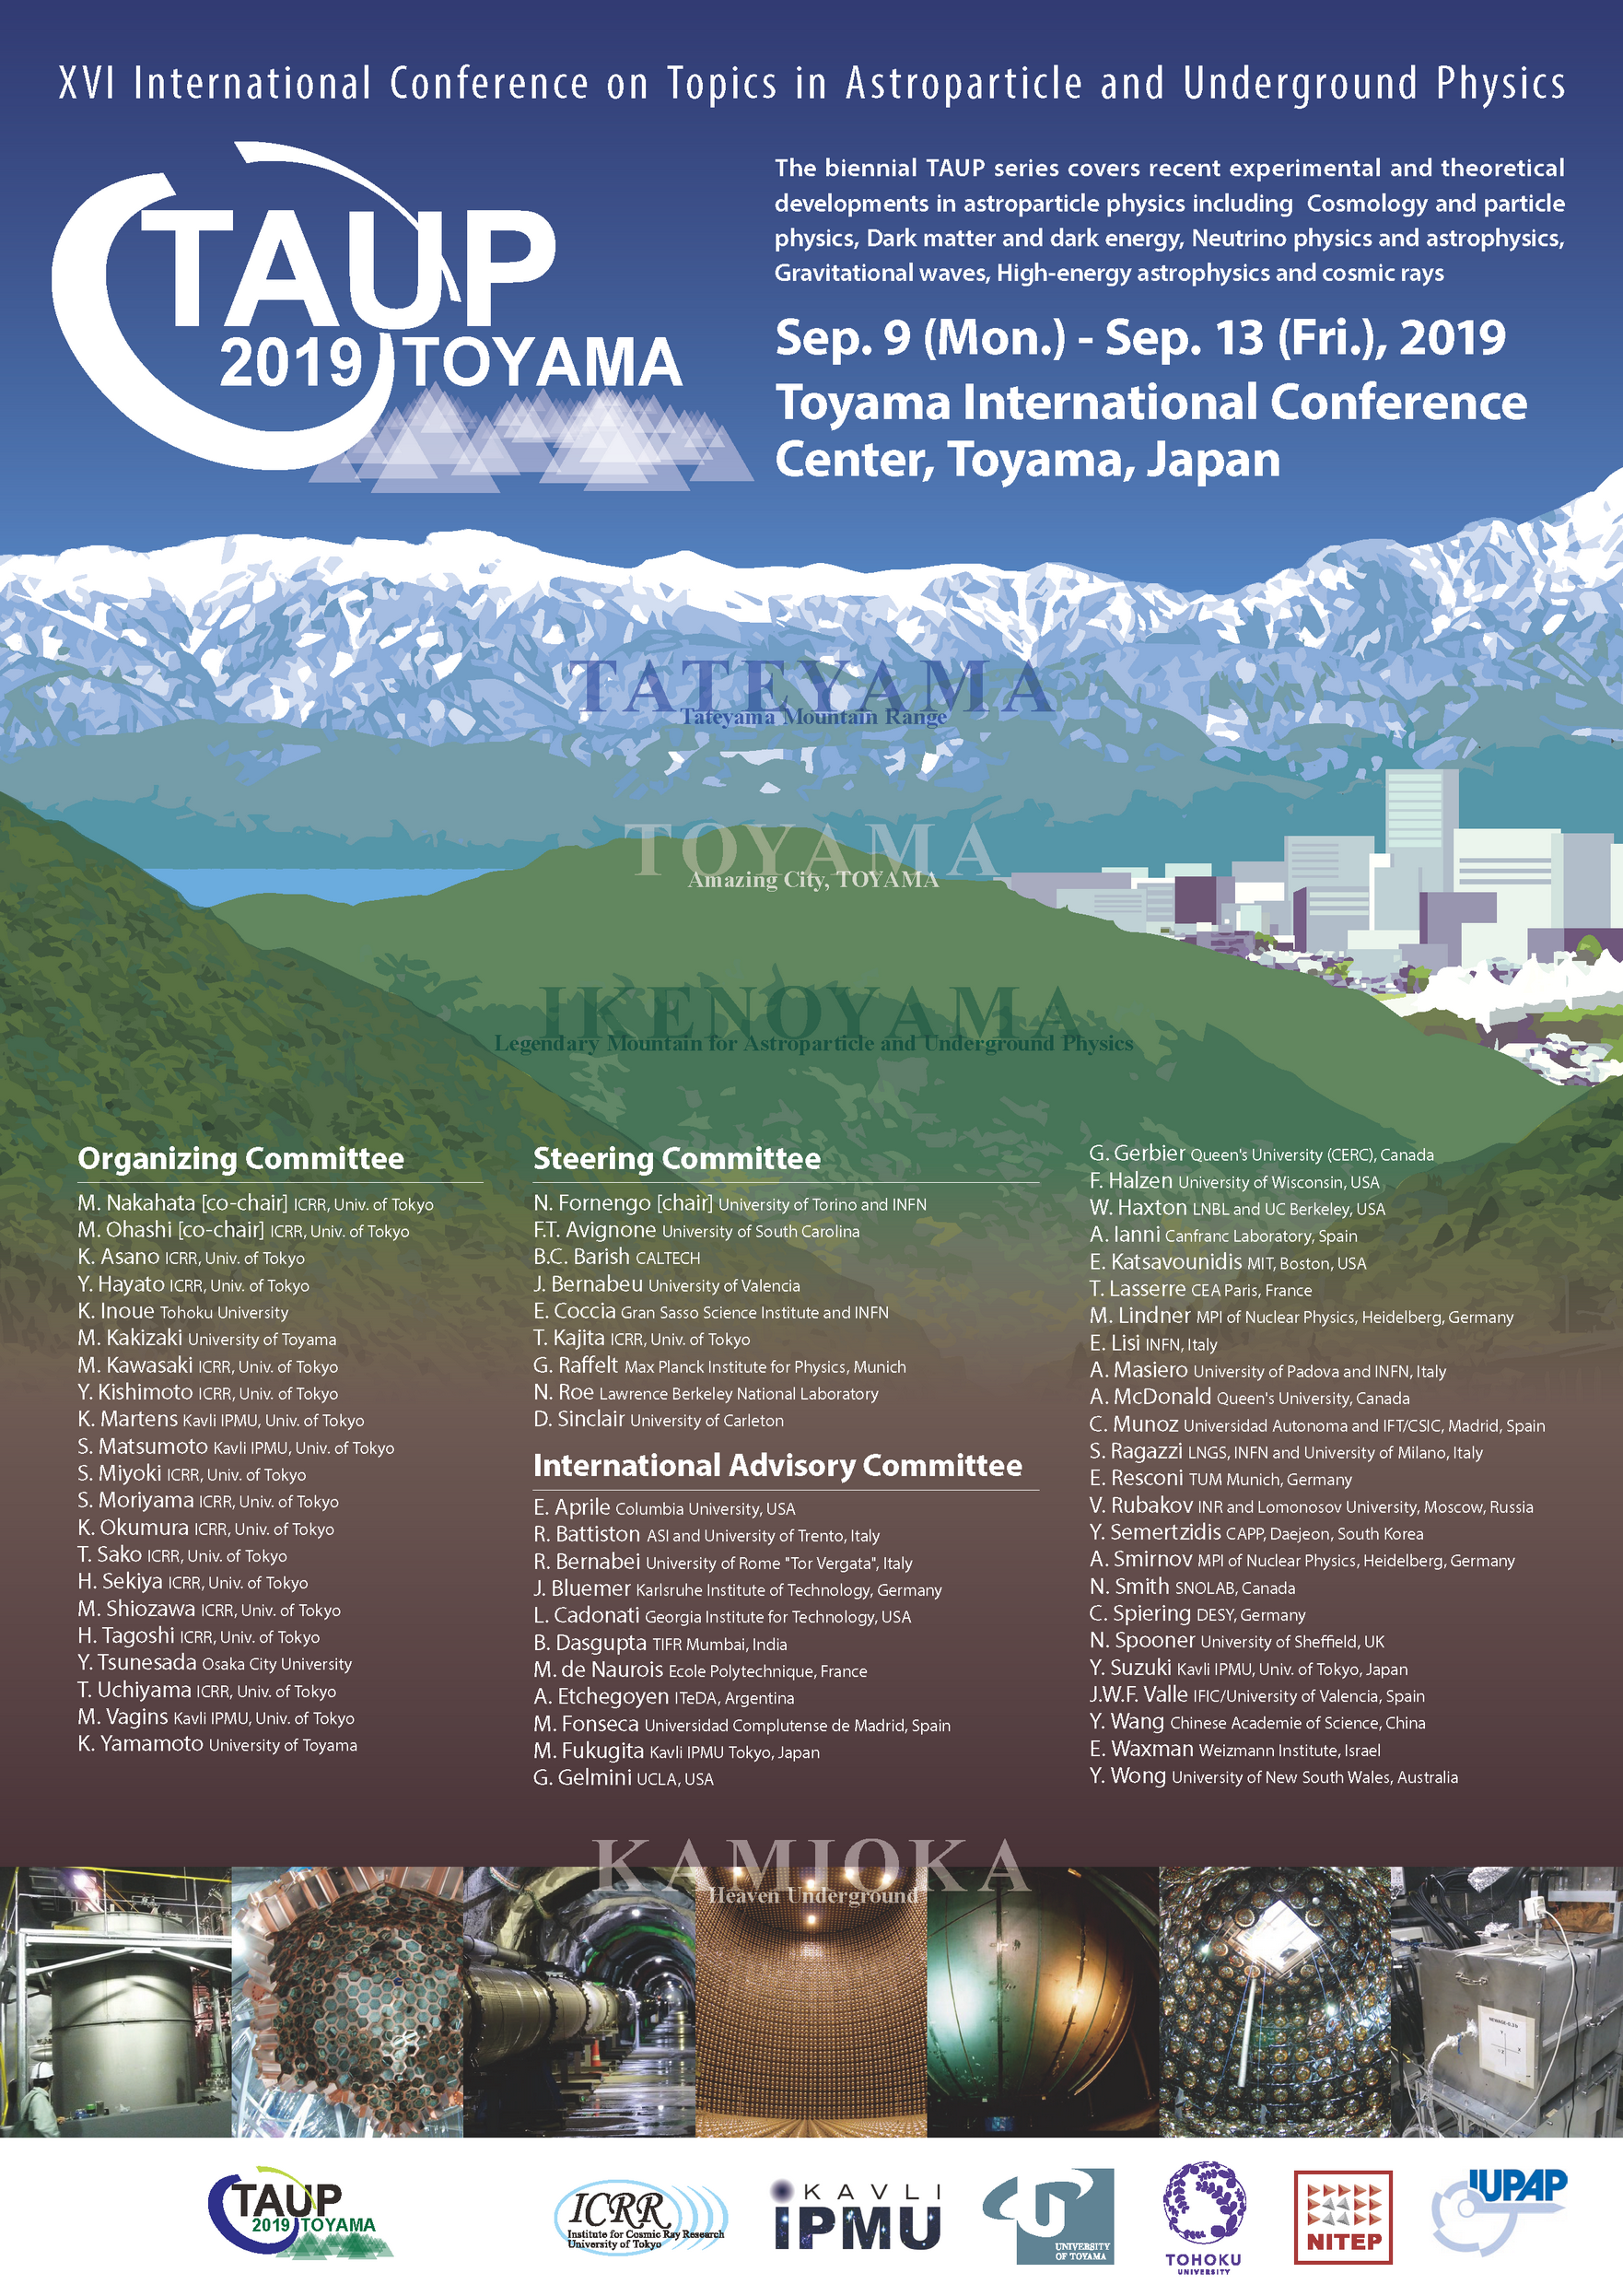 TAUP 2019 in Toyama